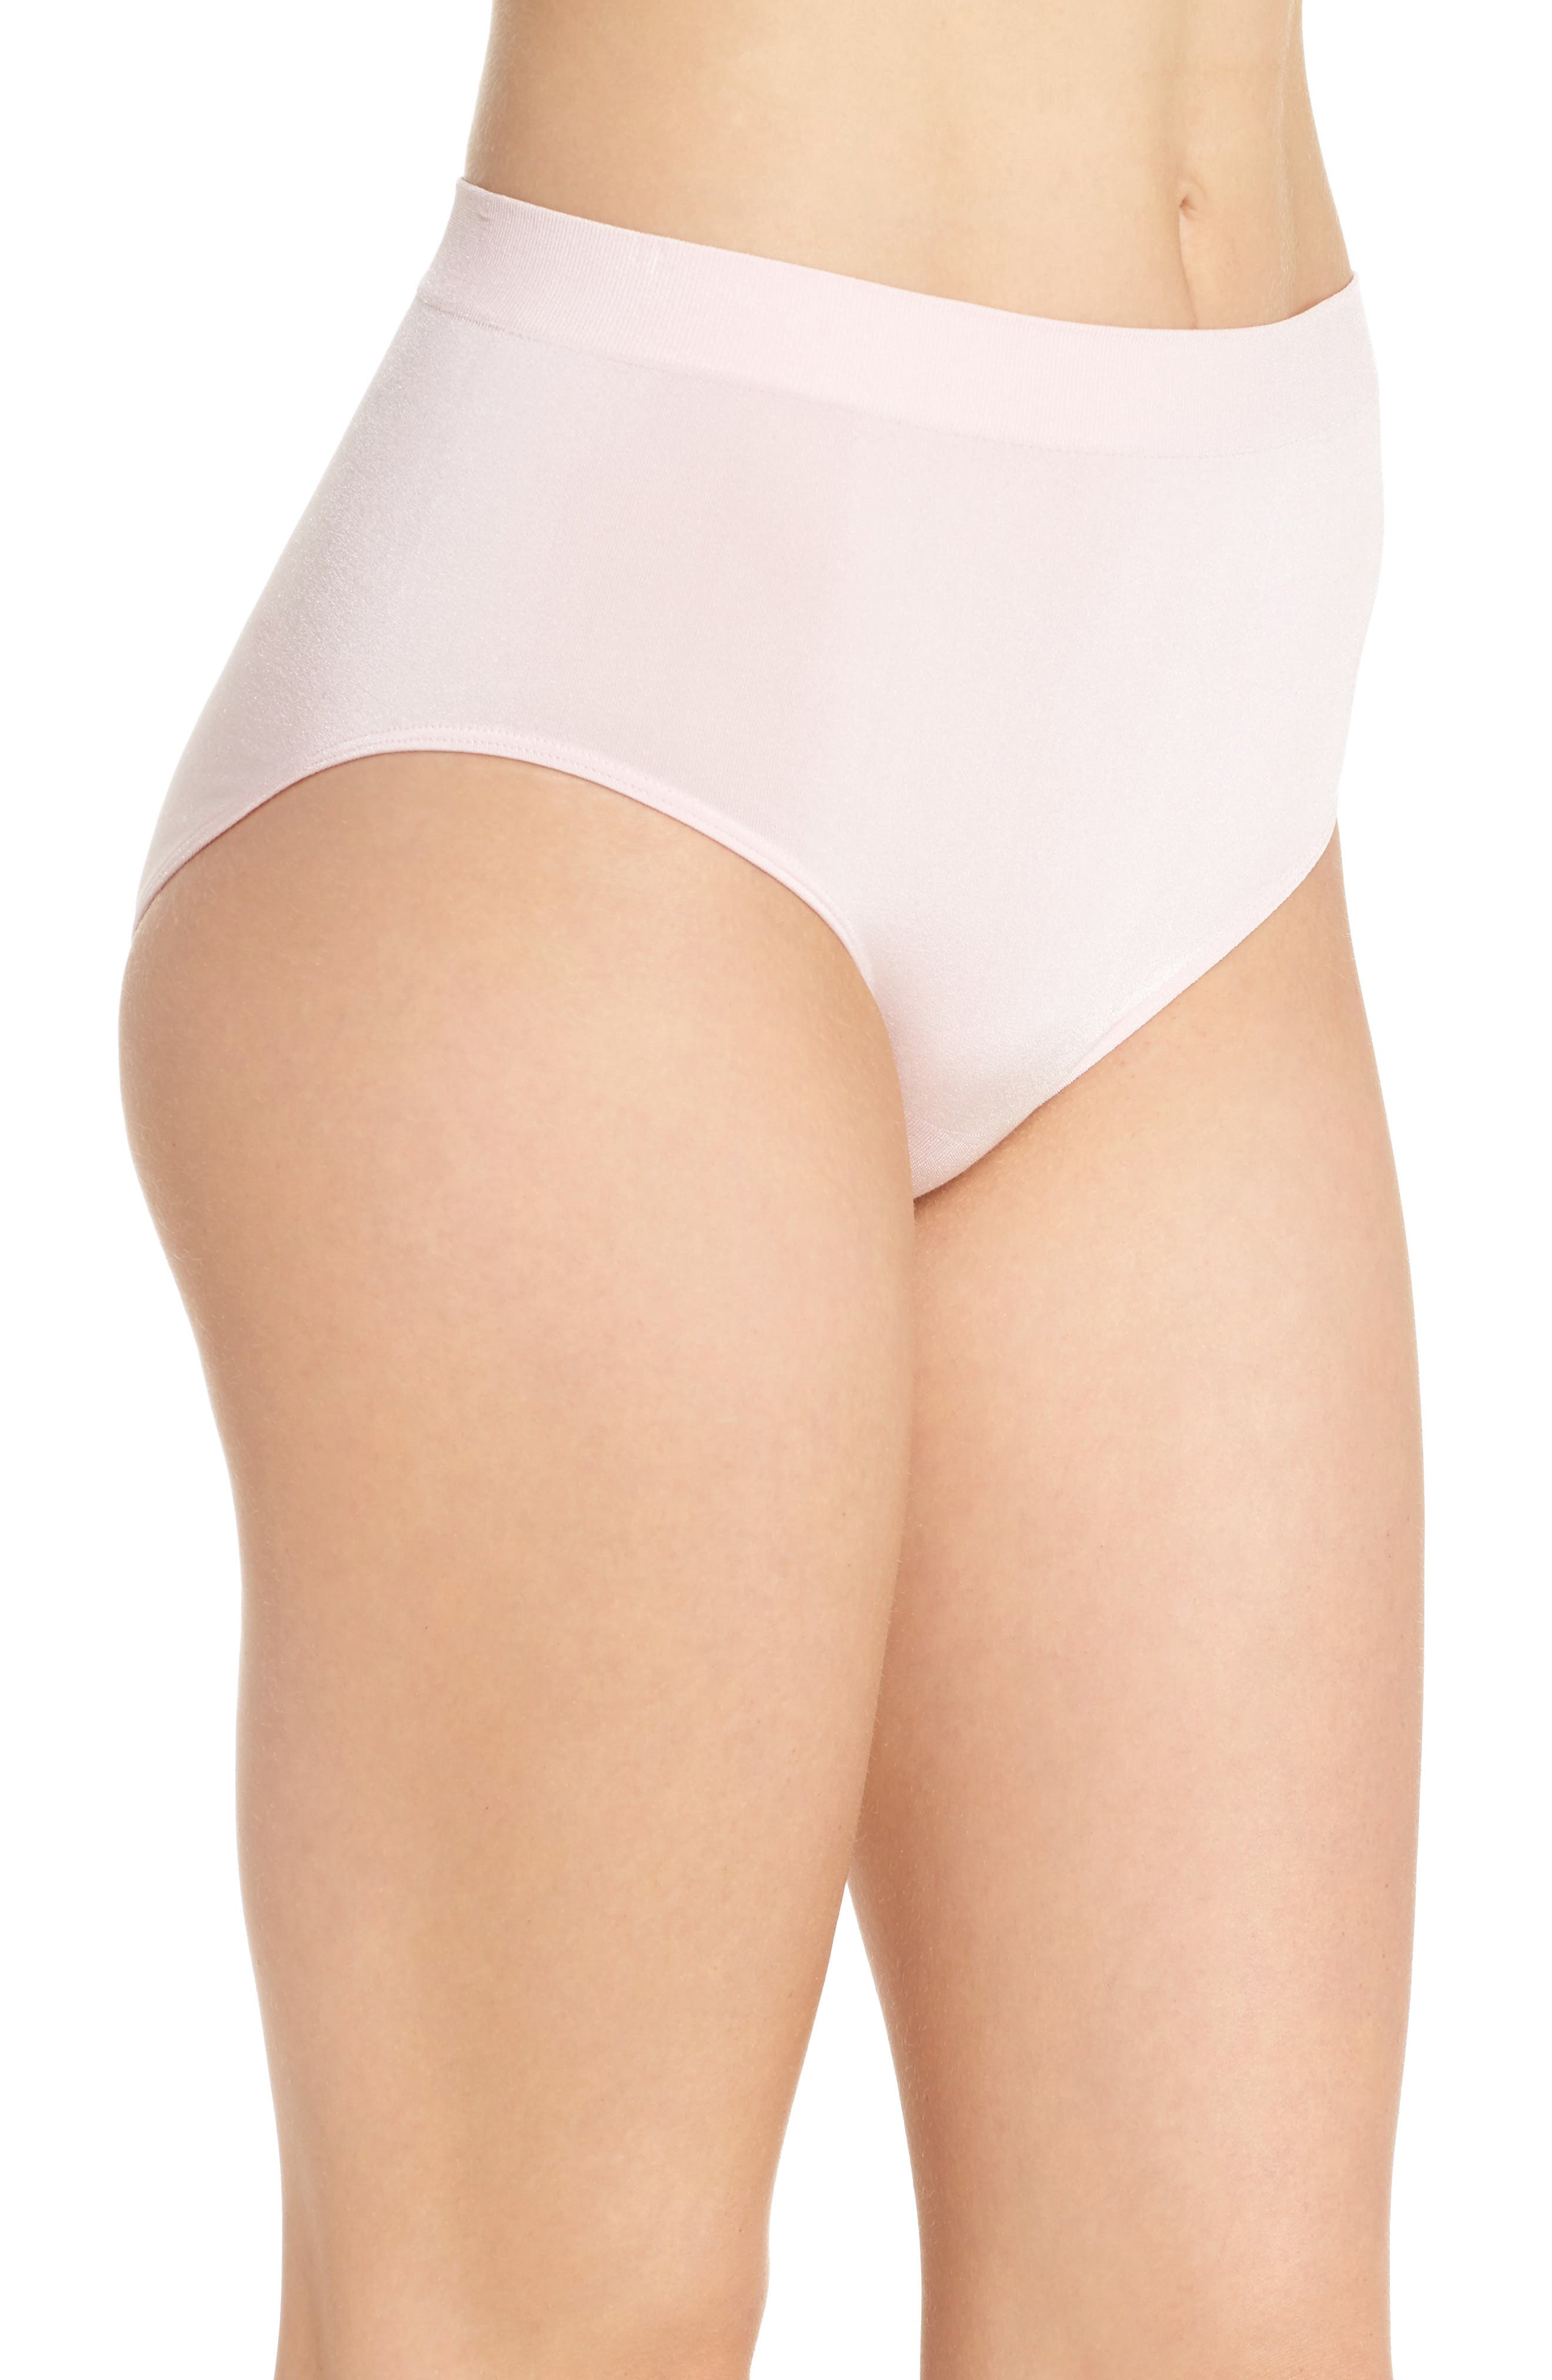 B Smooth Briefs,                             Alternate thumbnail 151, color,